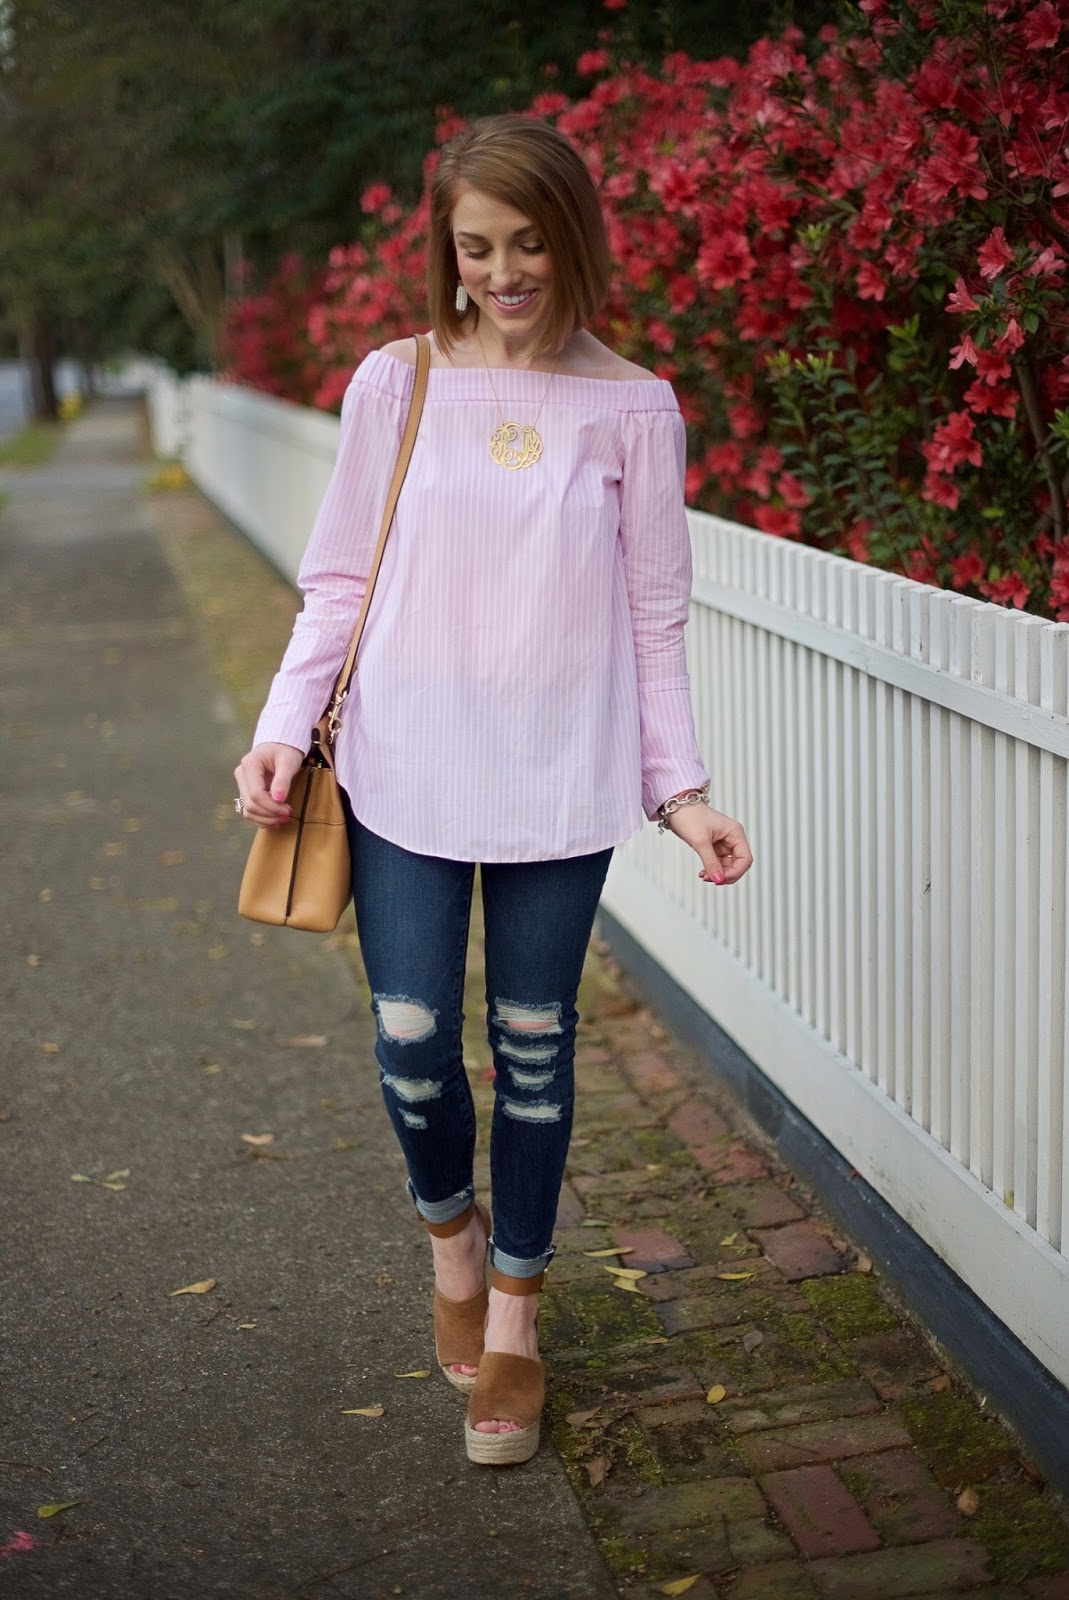 Spring Pink Outfit